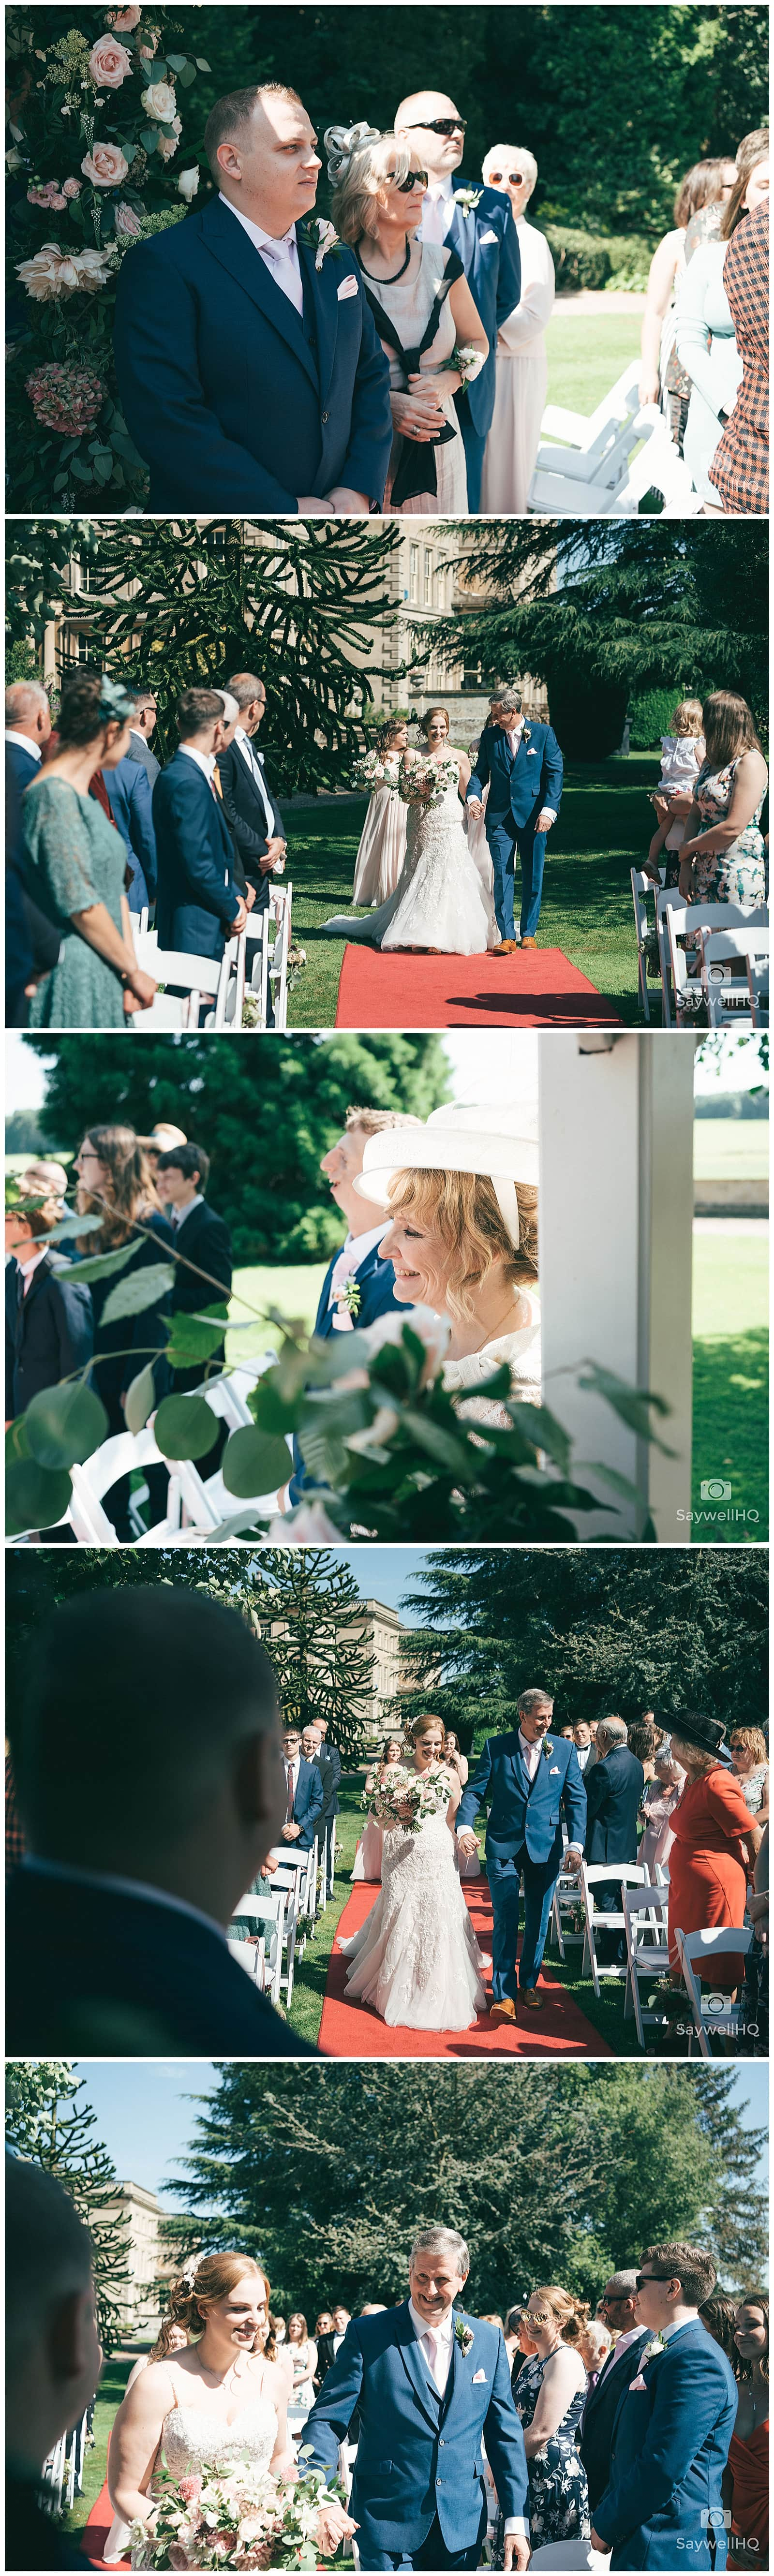 Wedding Photography at Prestwold Hall – outdoor wedding ceremony at prestwold hall